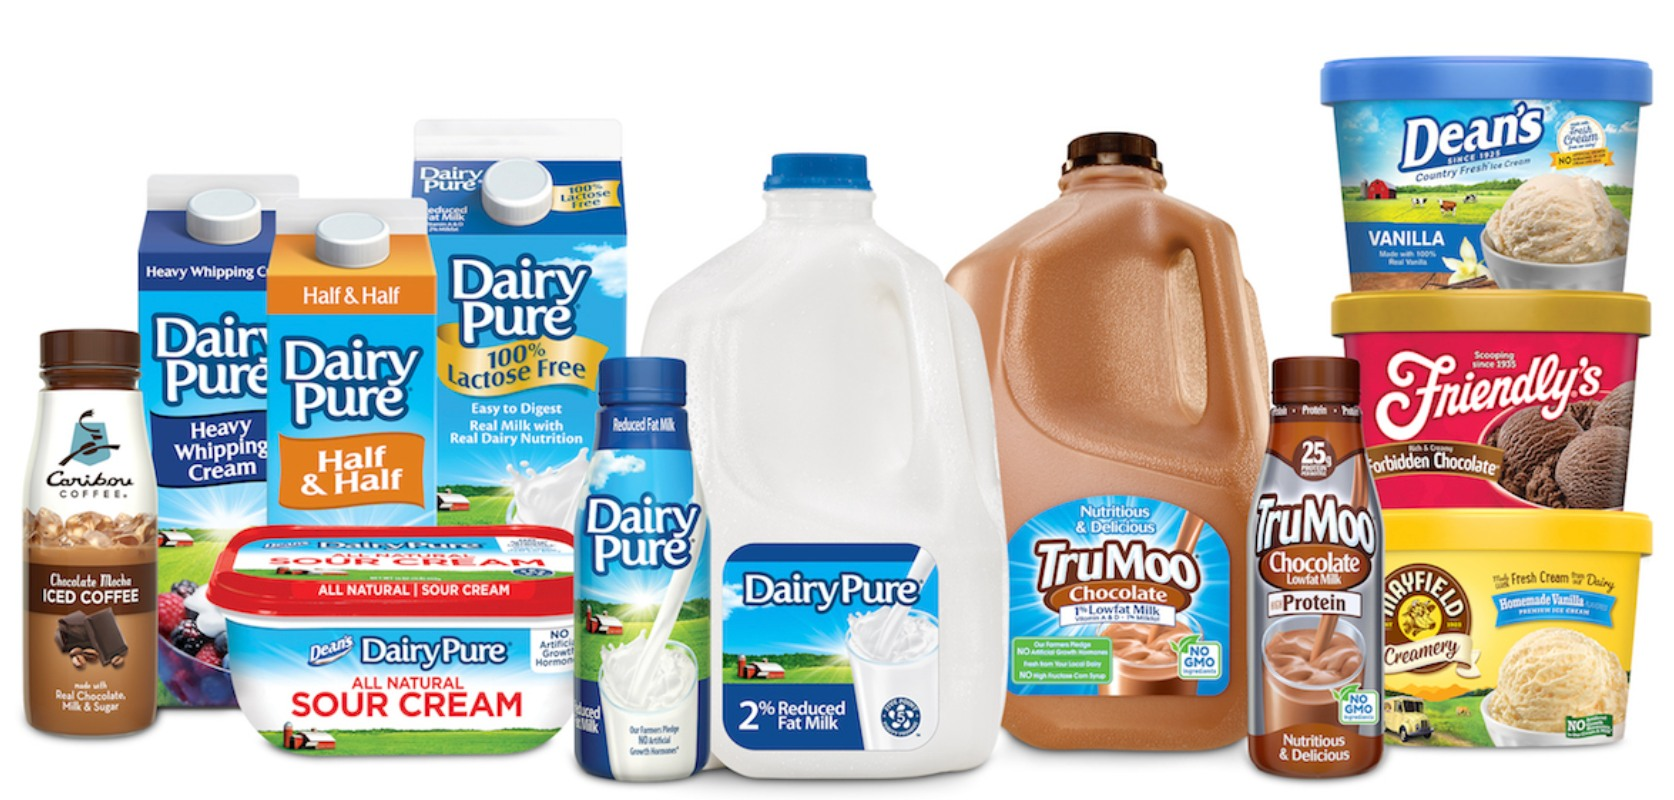 Dairy products made by Dean Foods